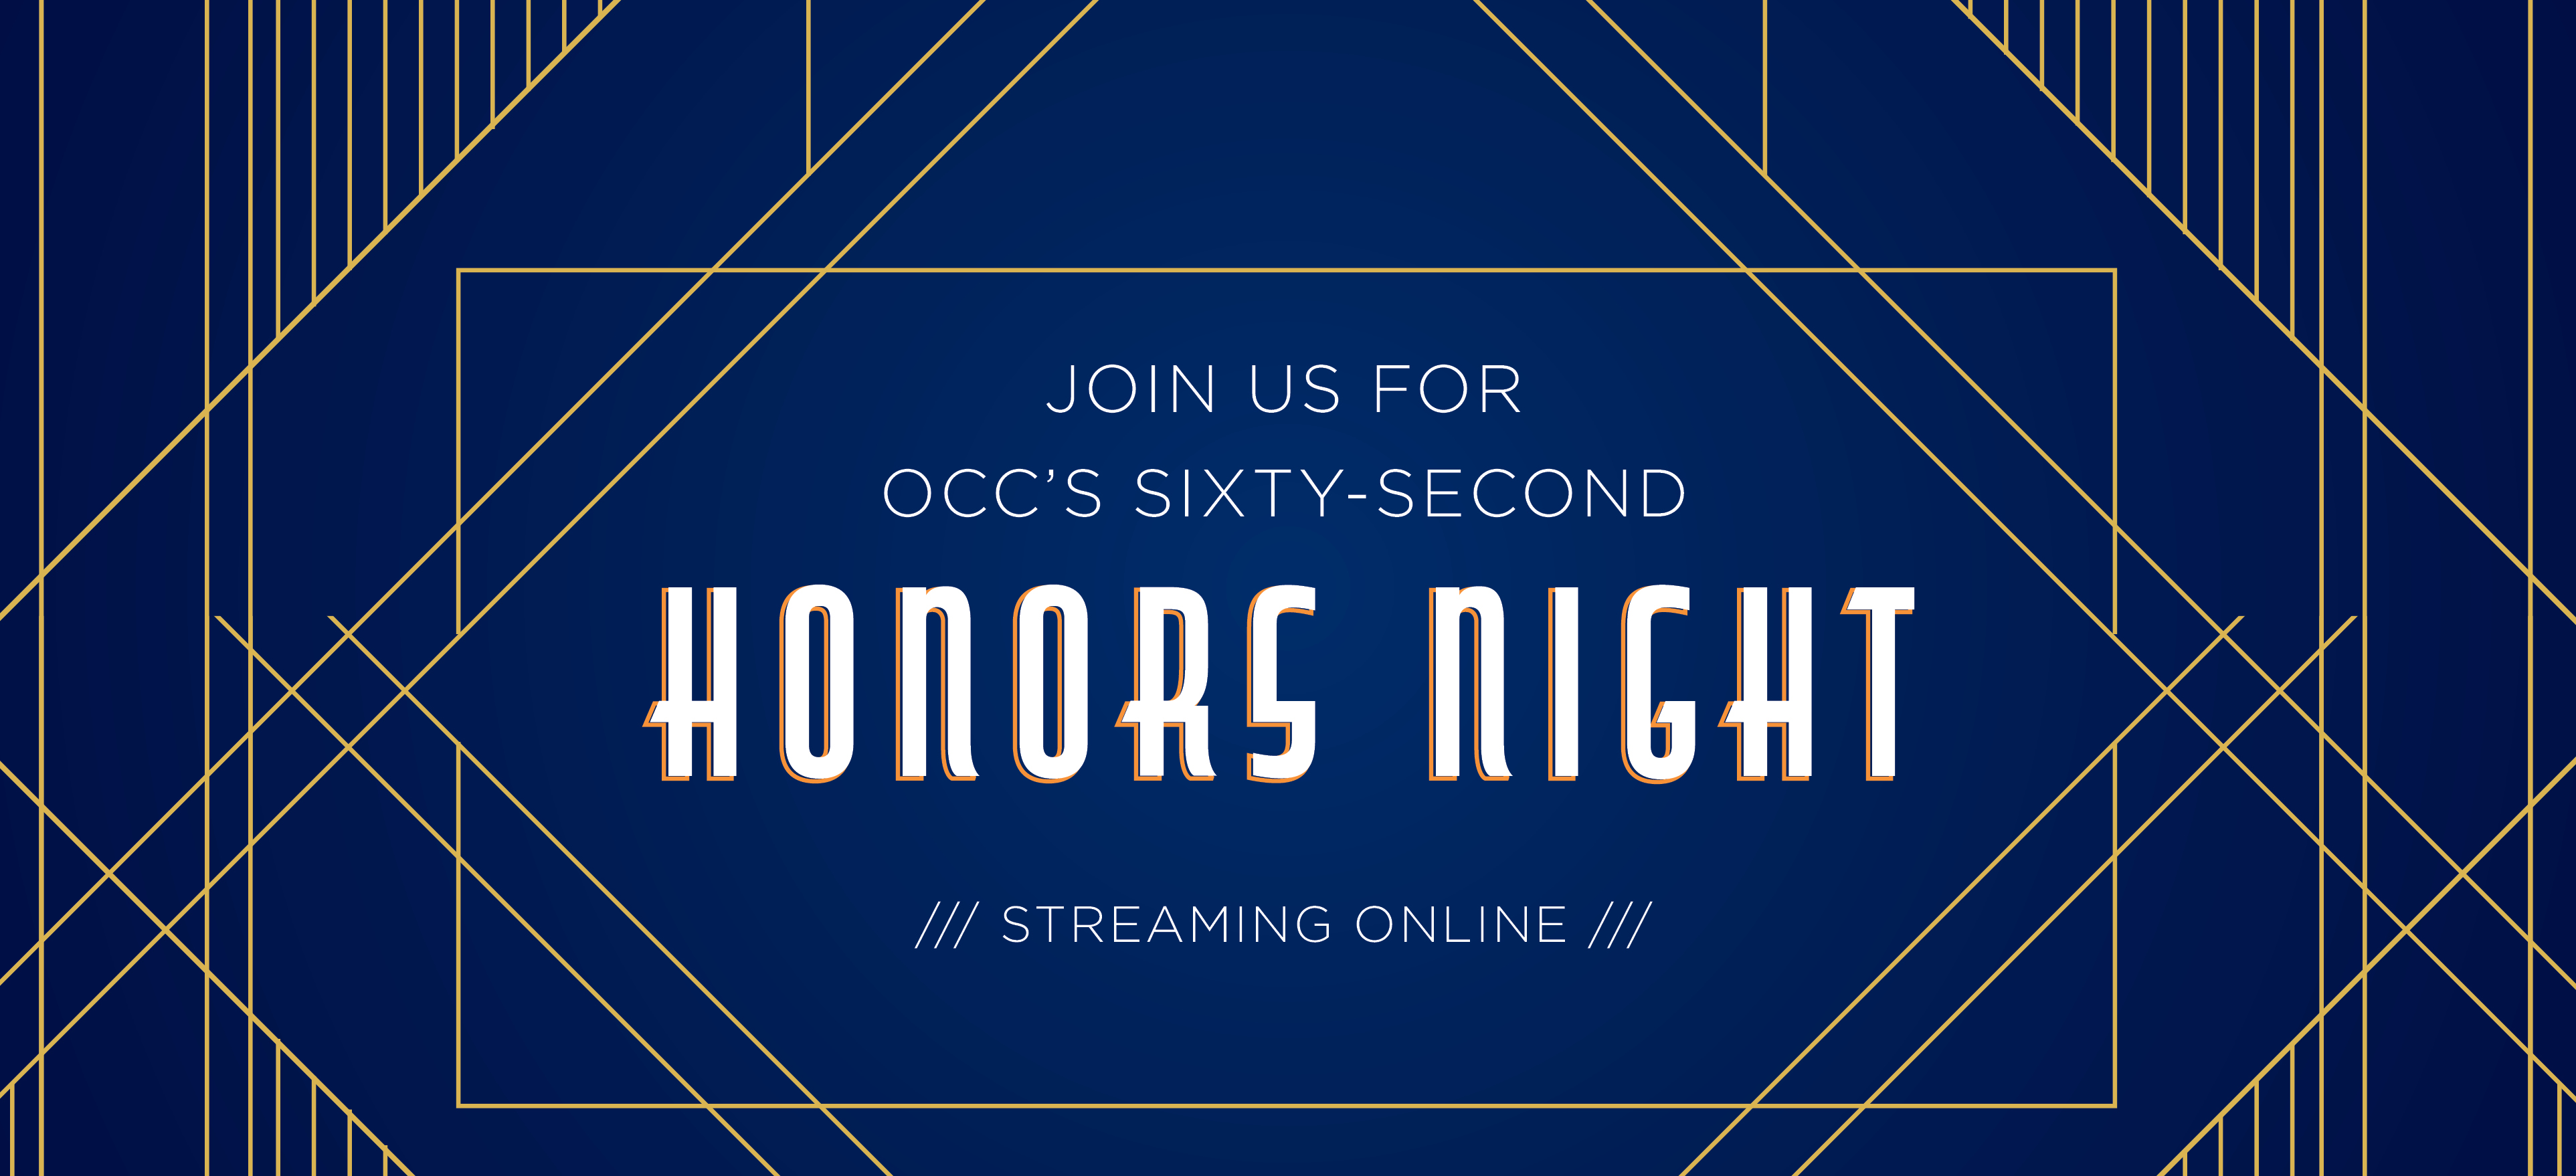 62nd Honors Night: Streaming Online